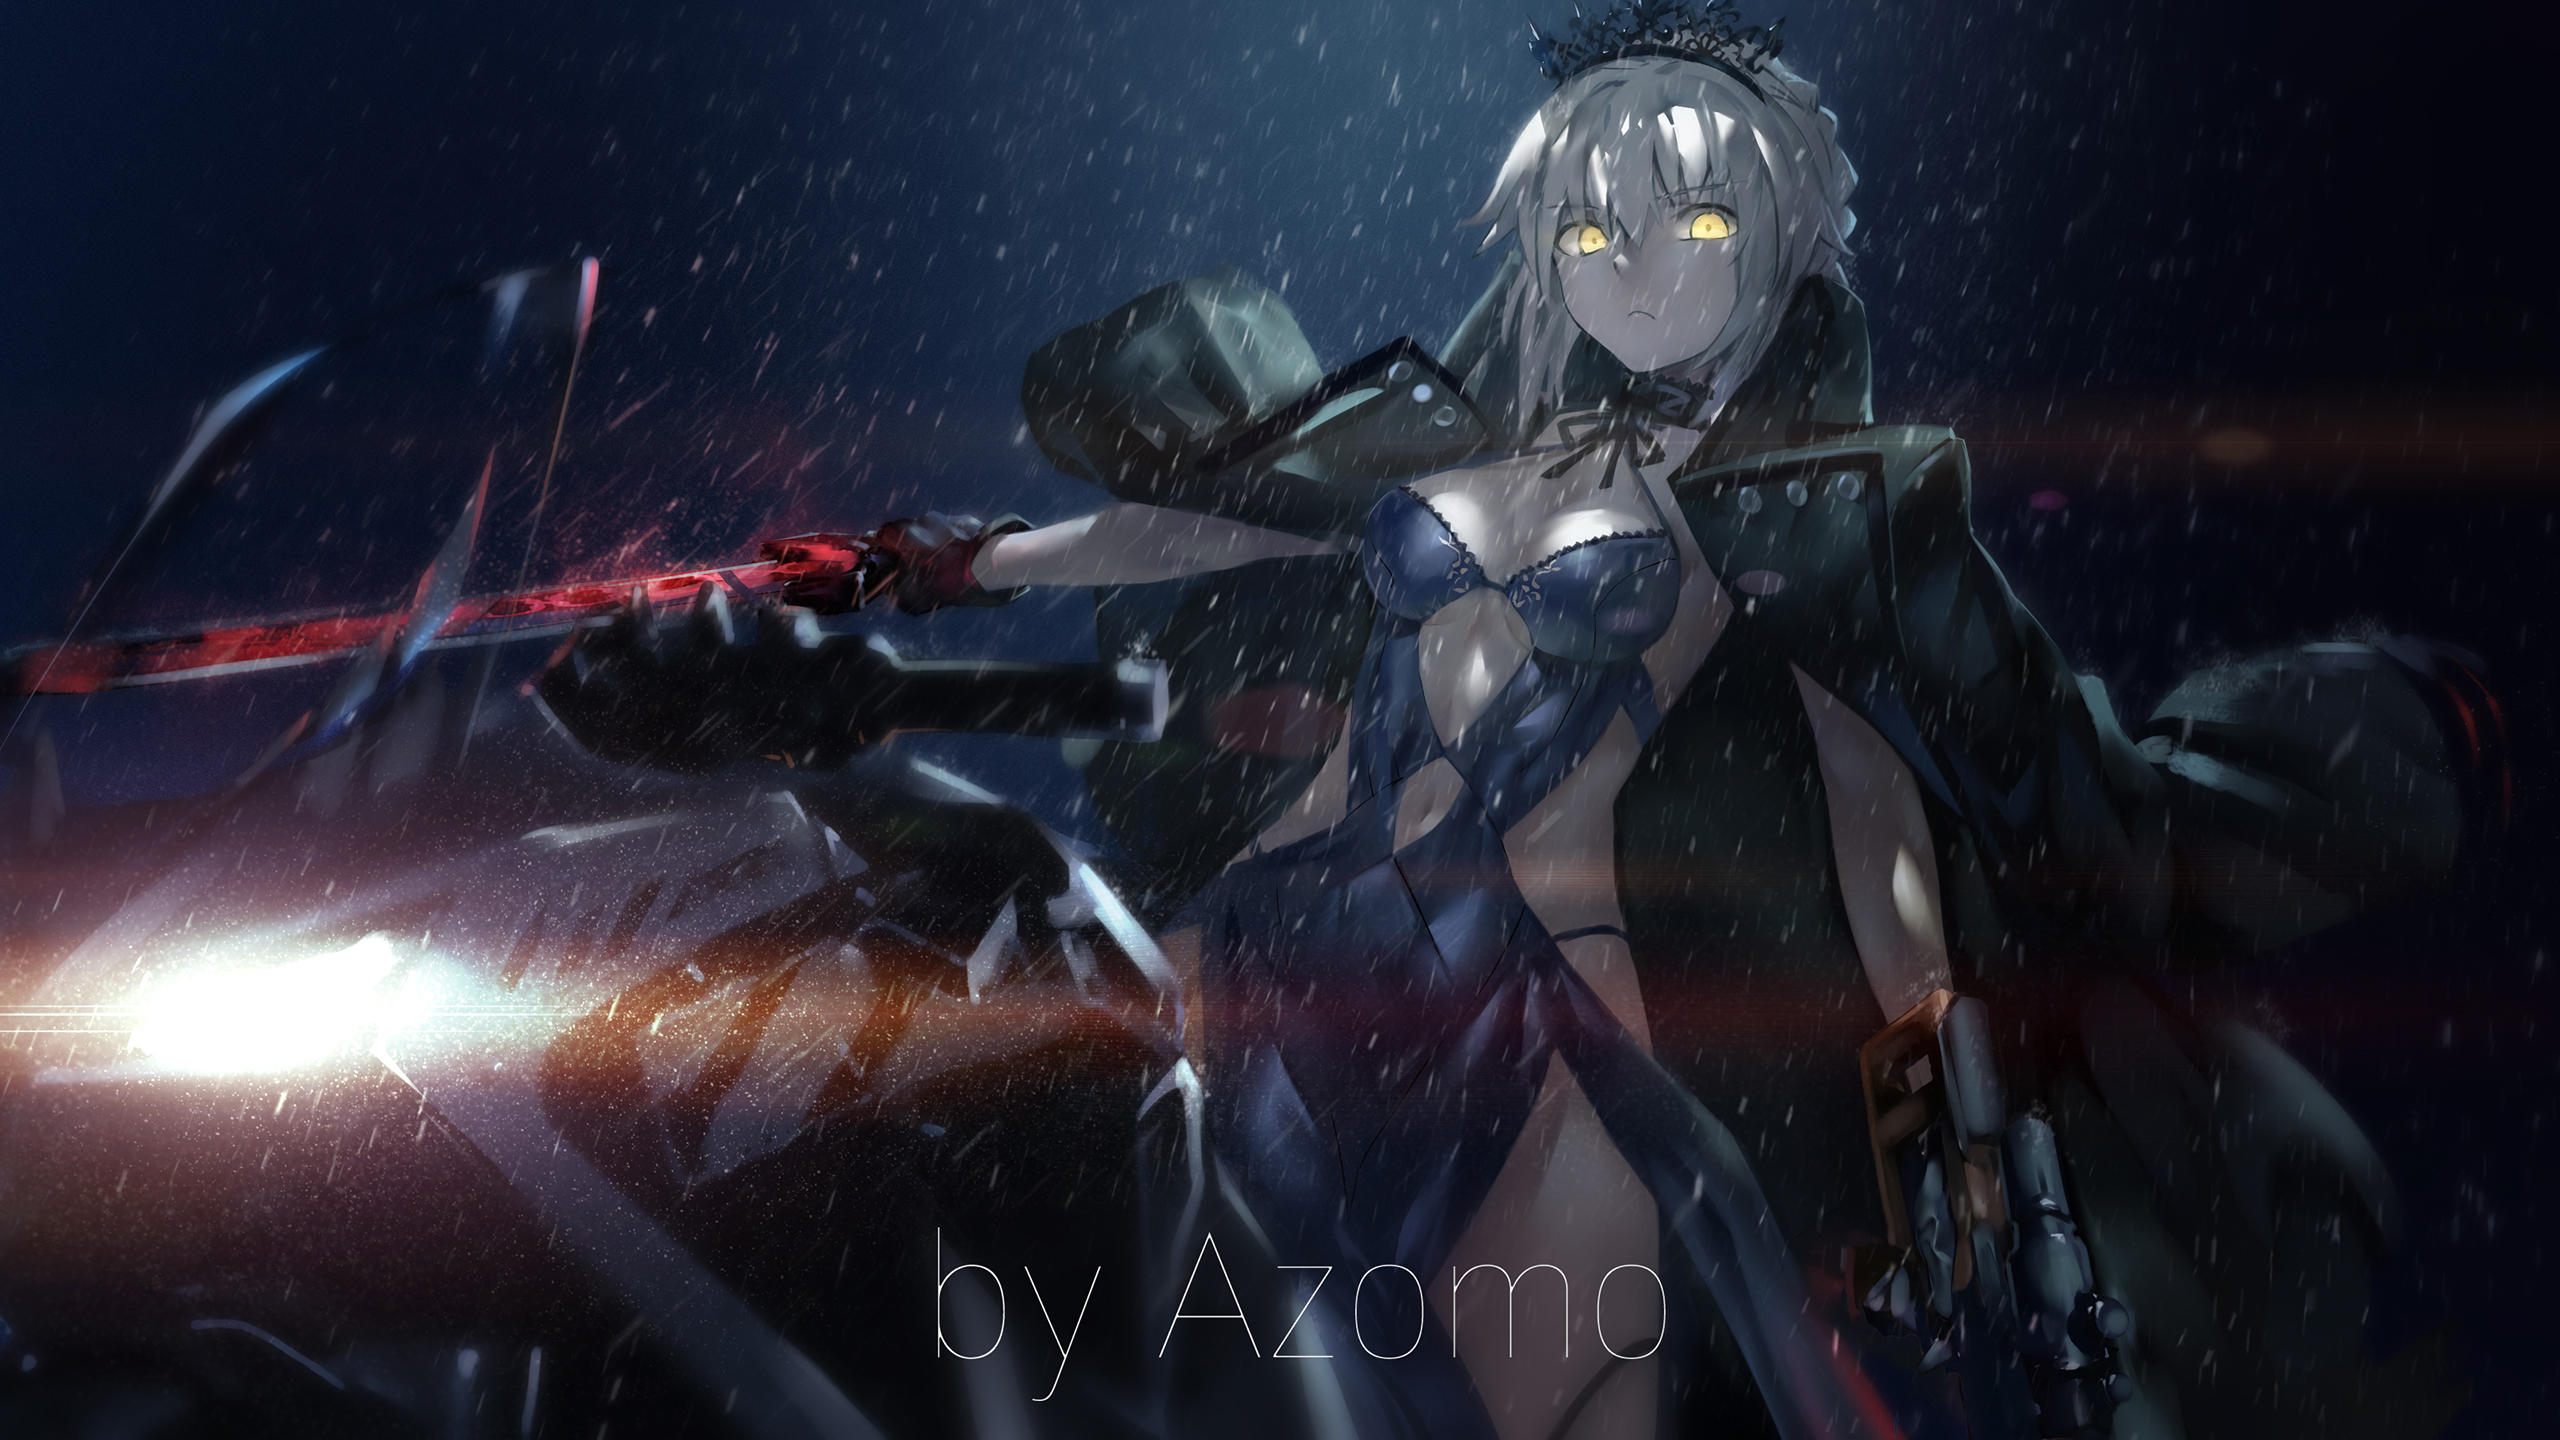 Fate Grand Order Saber Anime Wallpapers Wallpaper Cave